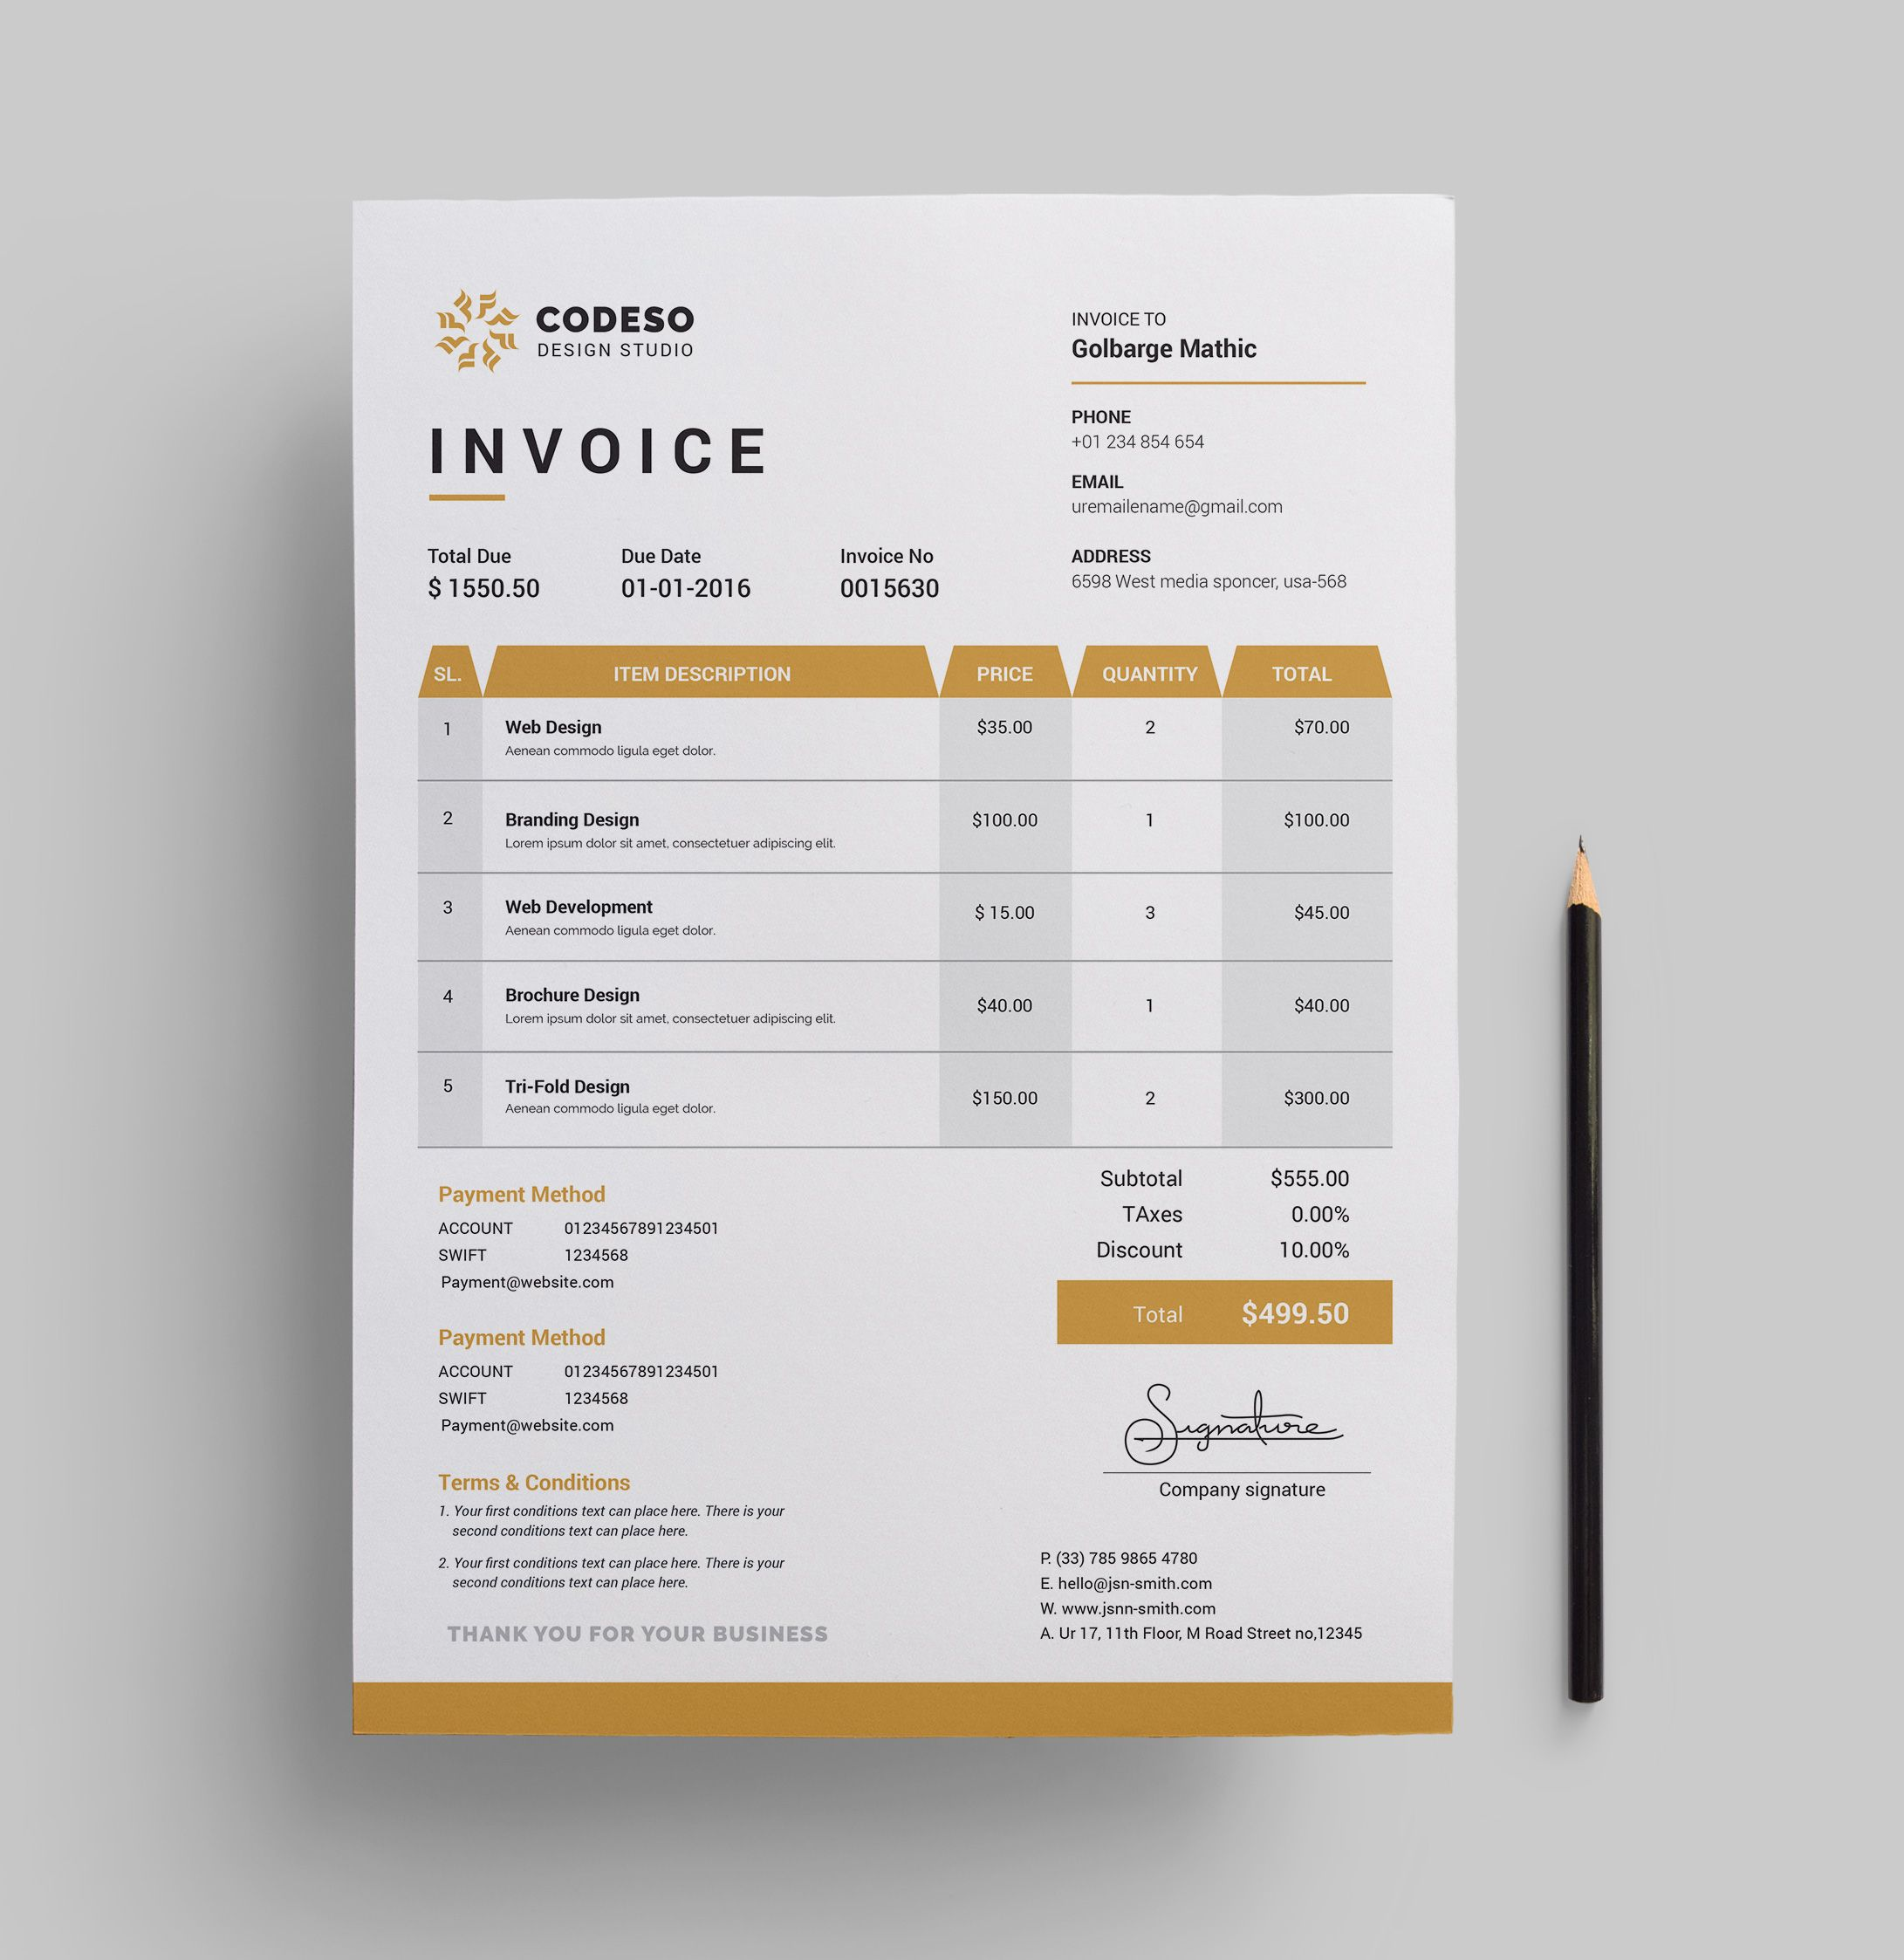 Invoice Template With Elegant Style Graphic Delta Graphic Templates Store Invoice Template Invoice Design Template Invoice Design